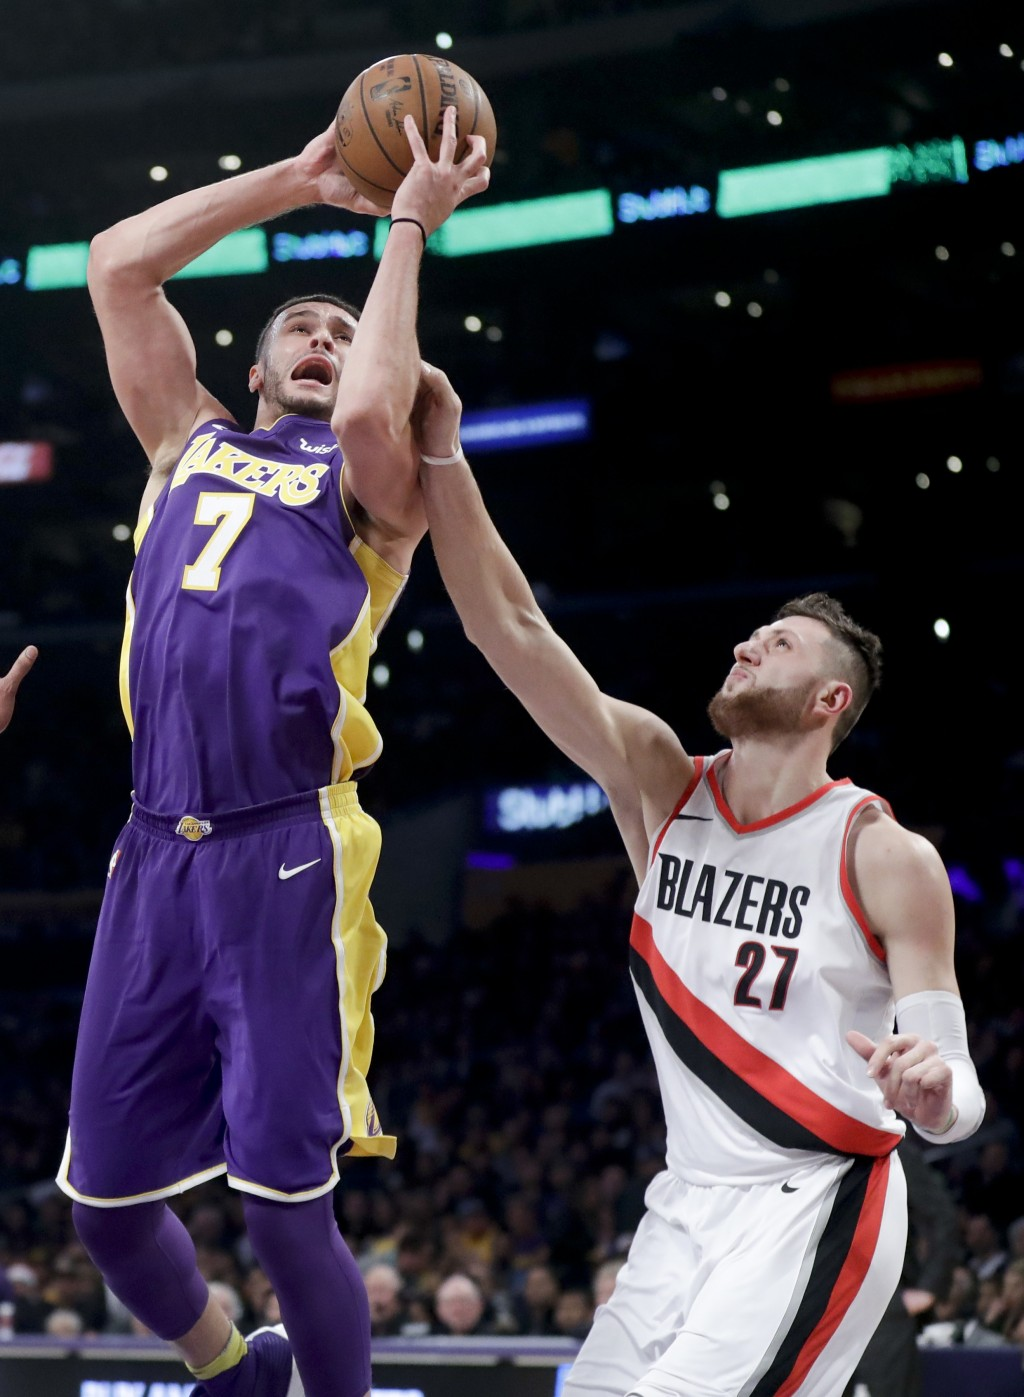 Los Angeles Lakers forward Larry Nance Jr., left, is fouled by Portland Trail Blazers center Jusuf Nurkic during the first half of an NBA basketball g...